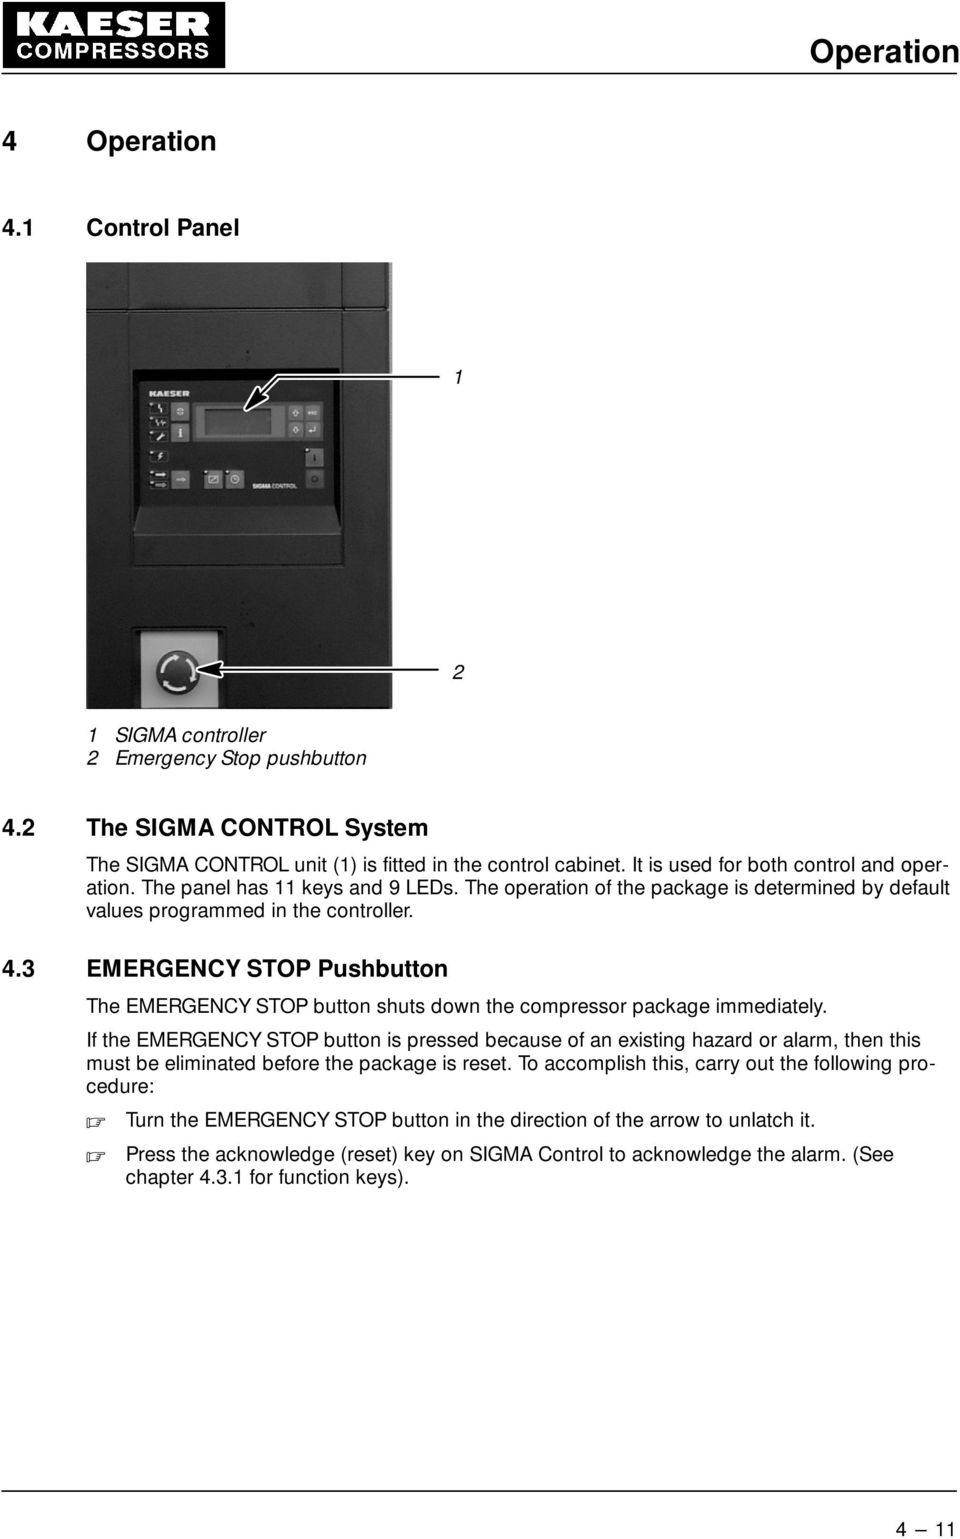 hight resolution of 3 emergency stop pushbutton the emergency stop button shuts down the compressor package immediately